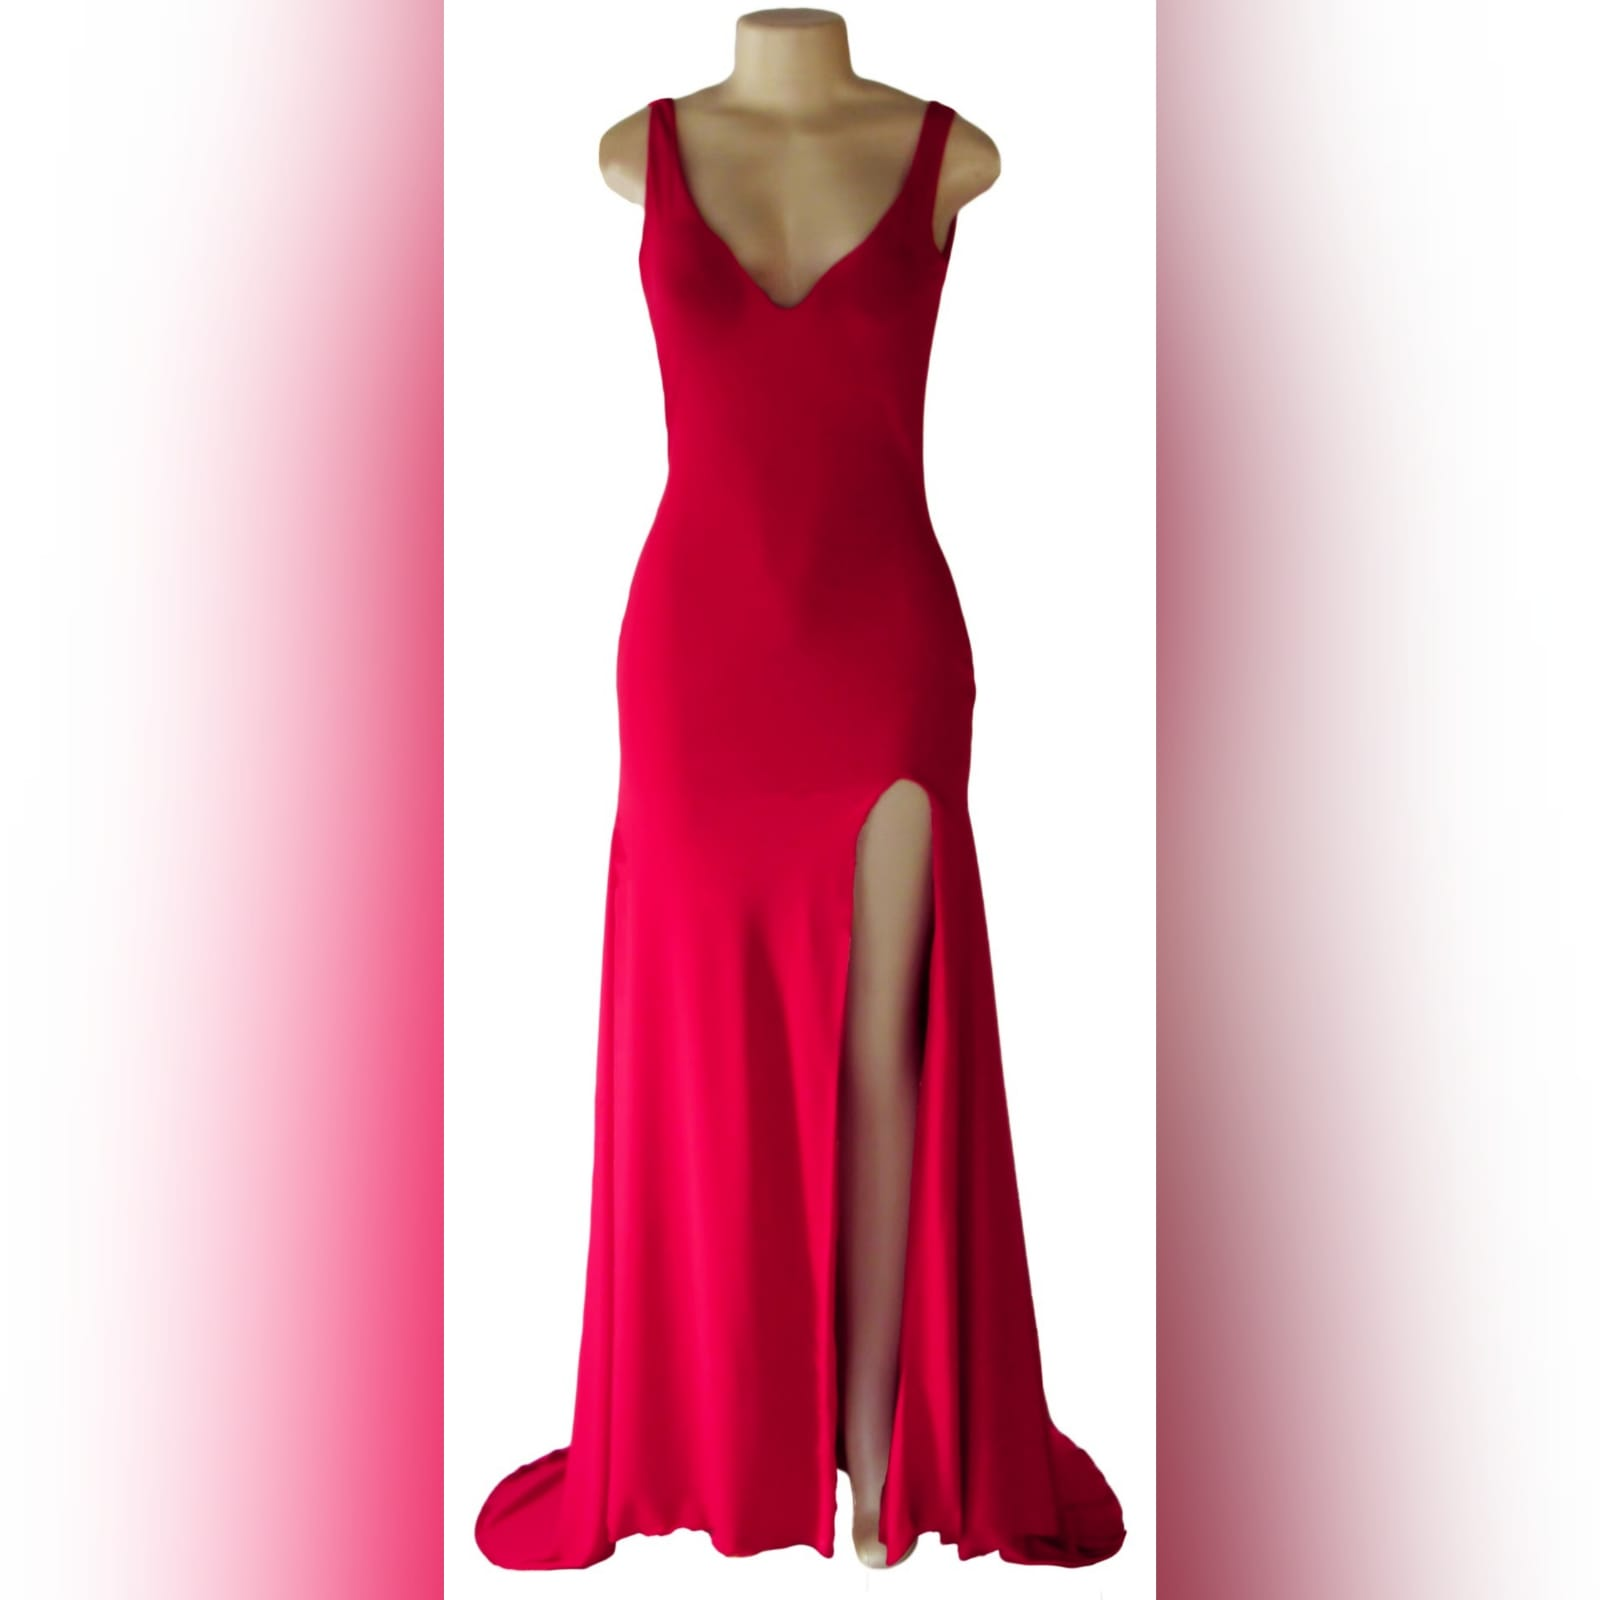 Red long sexy fitted prom dress 5 red long sexy fitted prom dress with a v neckline and v open back, with a slit and a train.